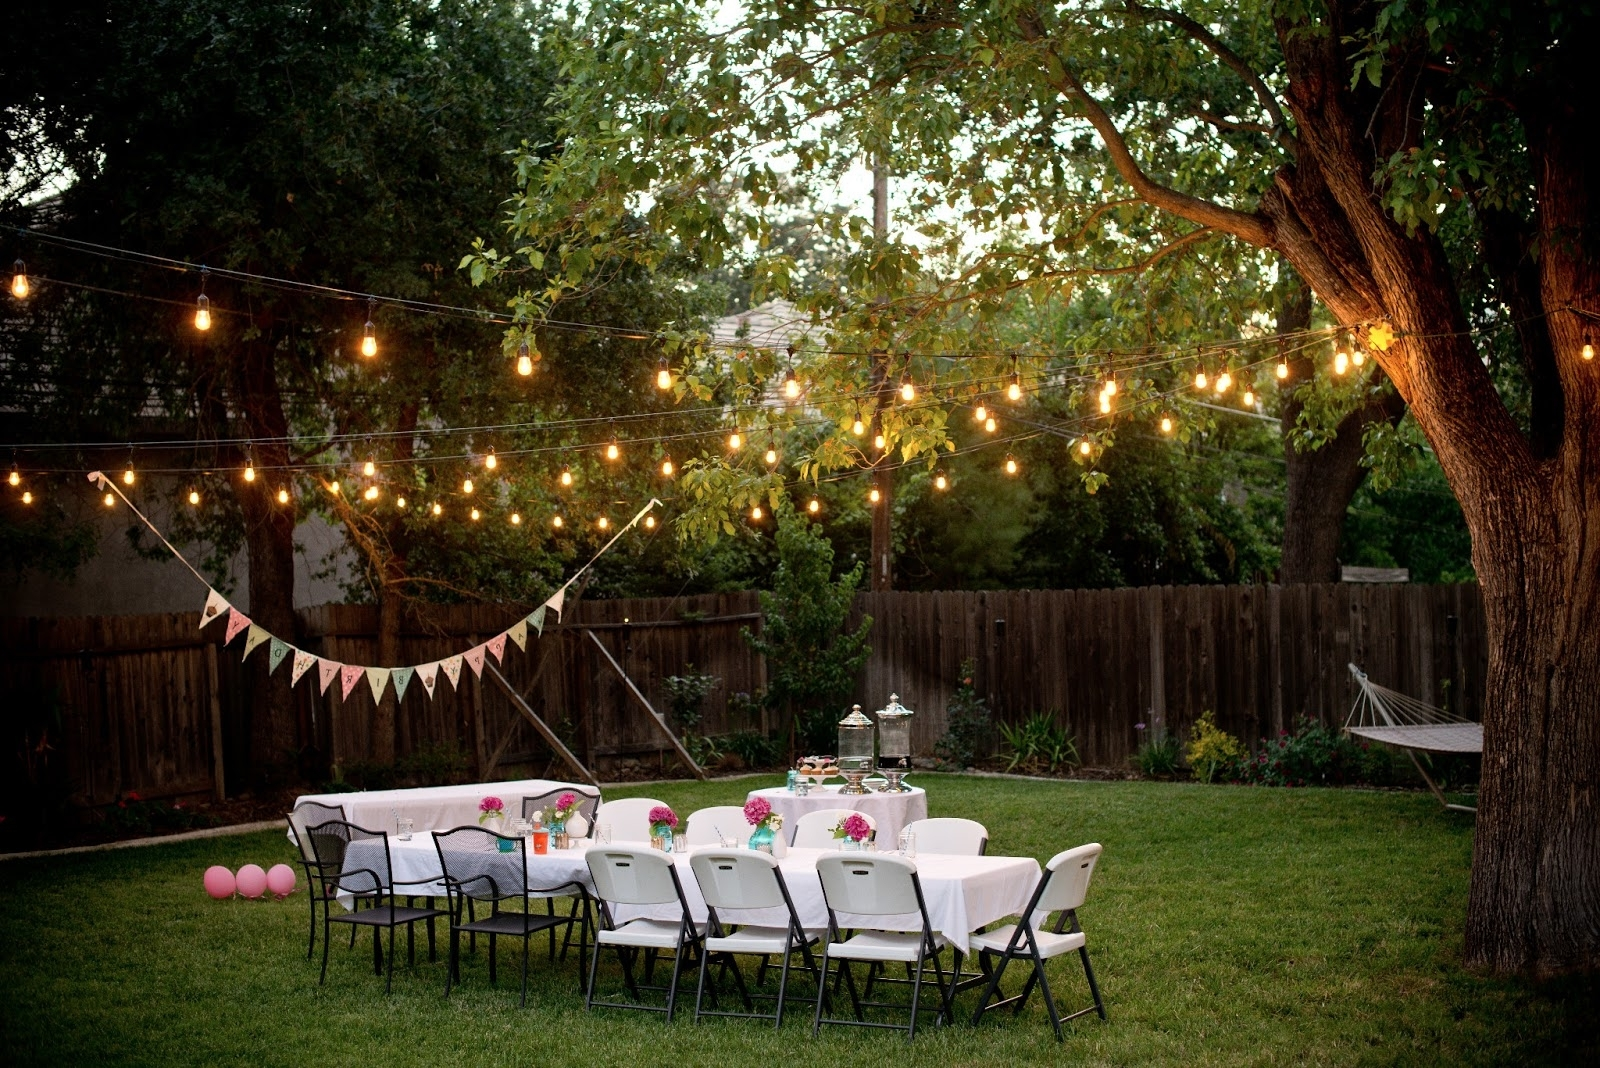 Outdoor Lanterns For Wedding Within Fashionable Cheap Outdoor Lights String Net Party Lighting Ideas For Weddings (View 11 of 20)